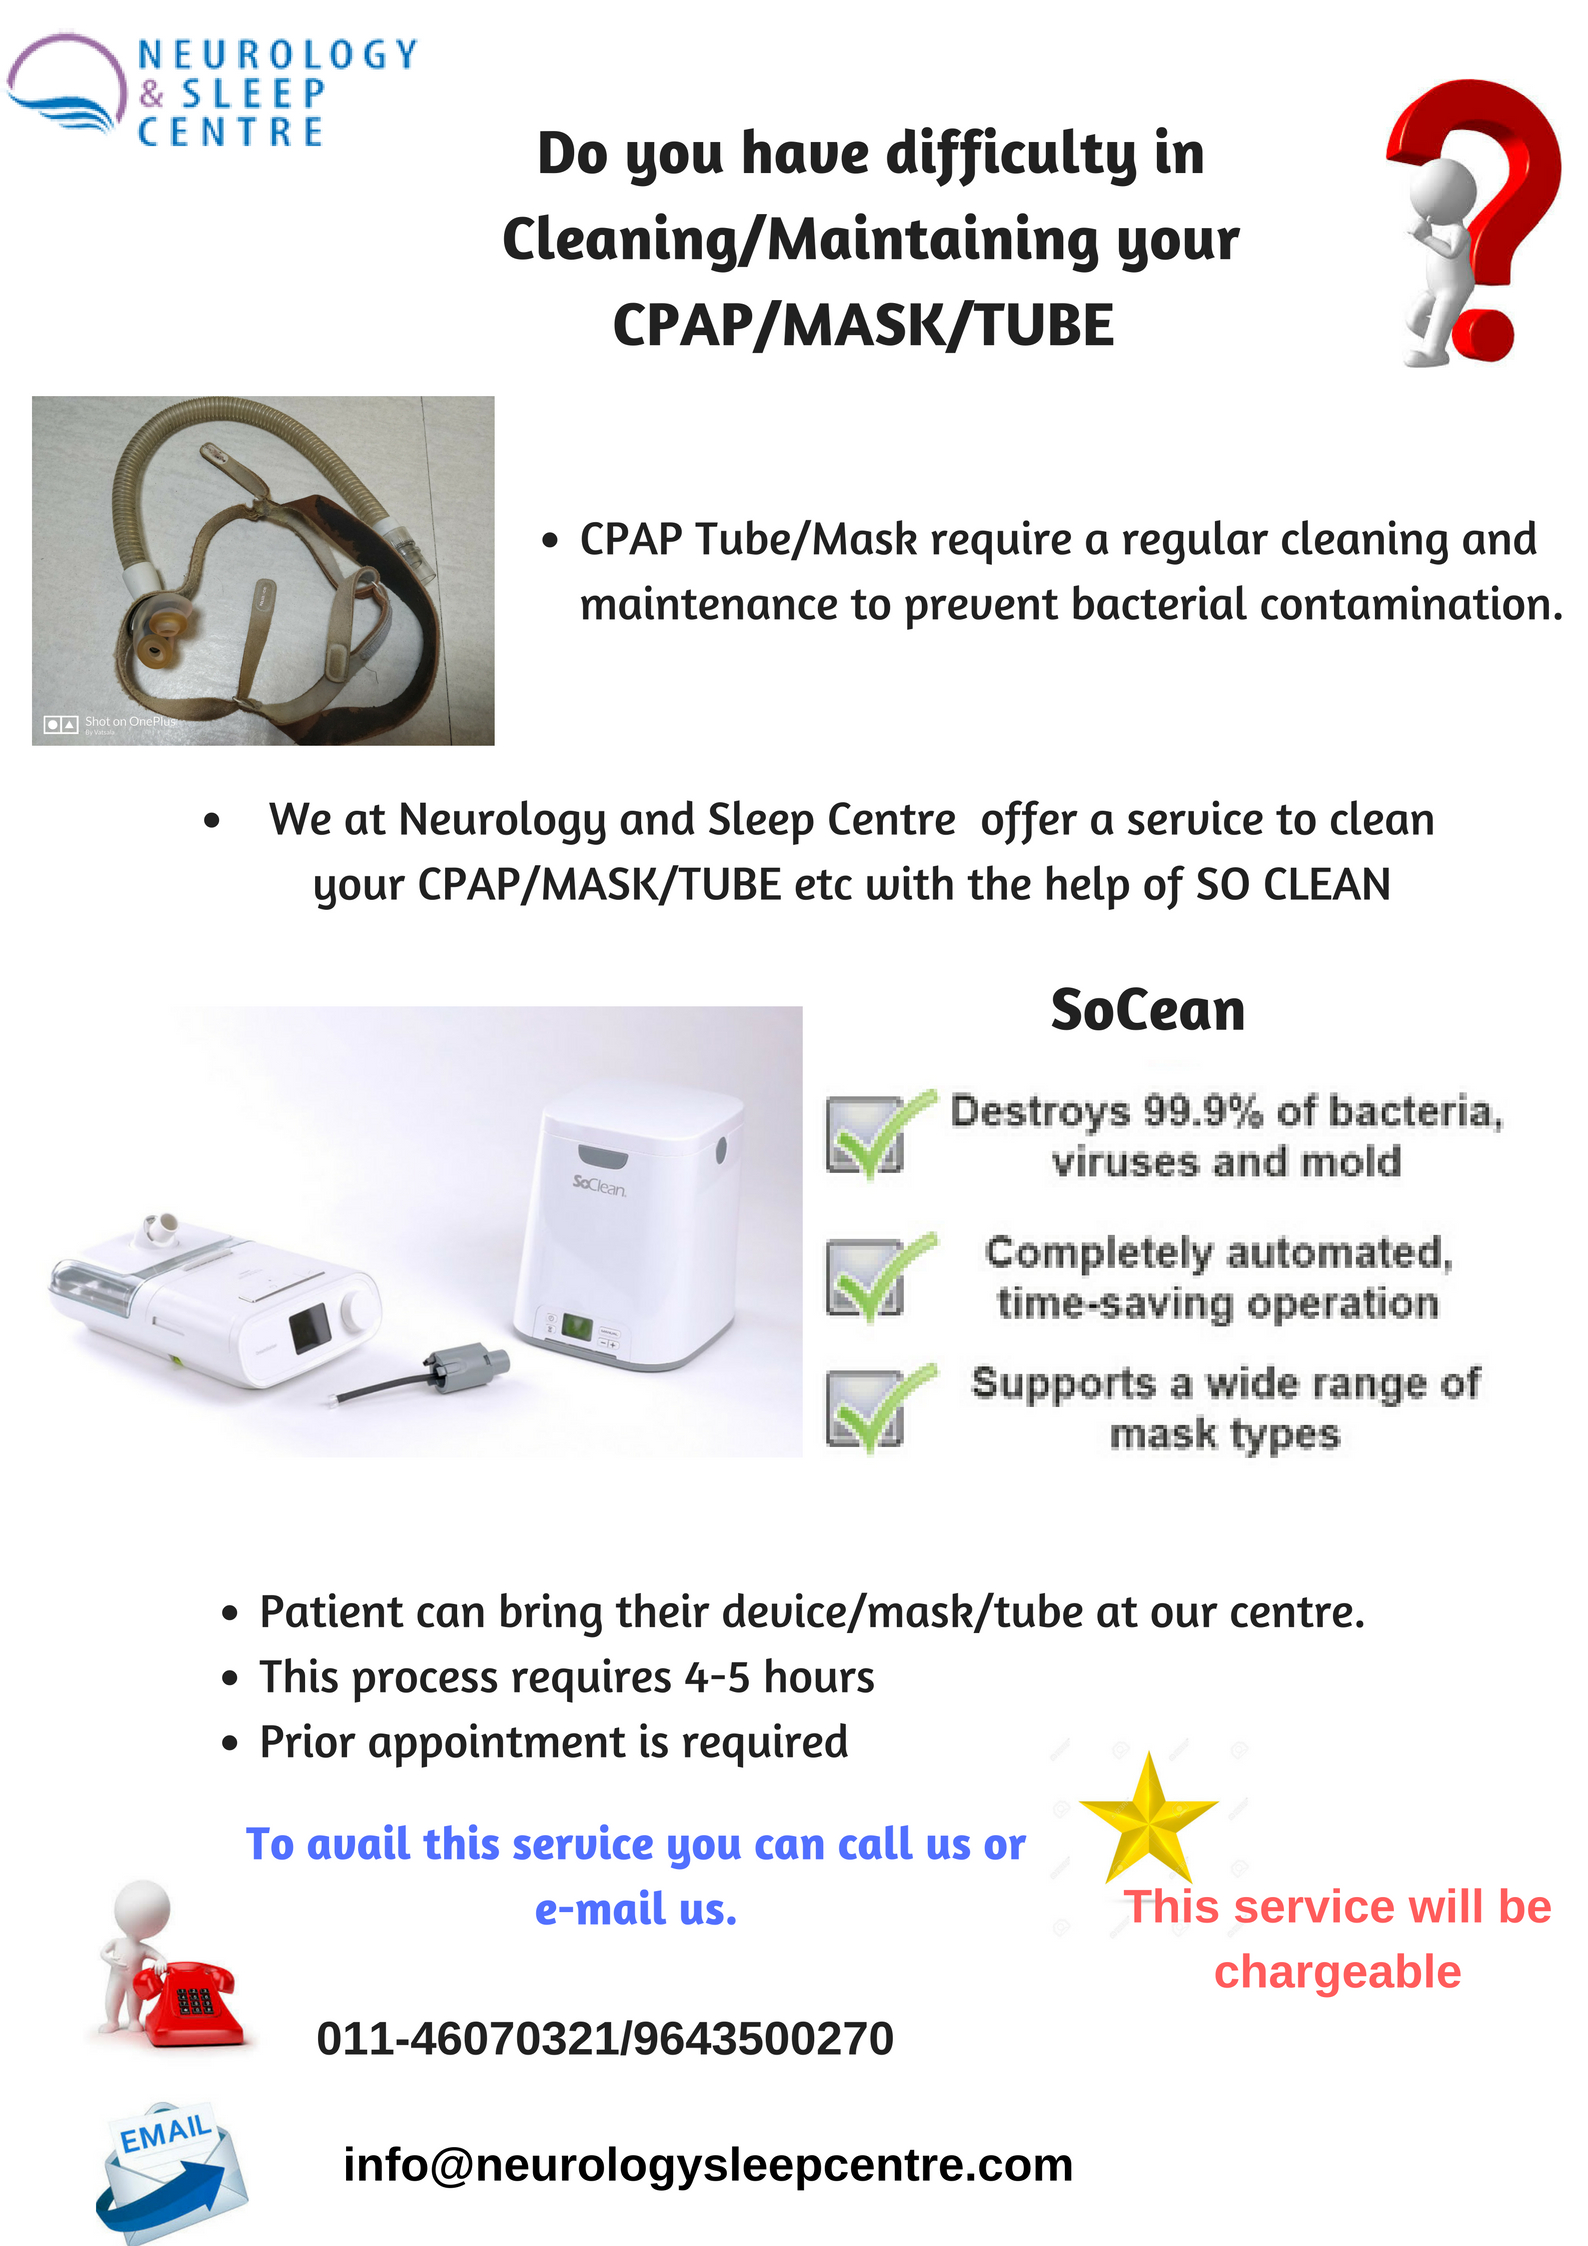 EASY WAY TO CLEAN Your CPAP with SO CLEAN